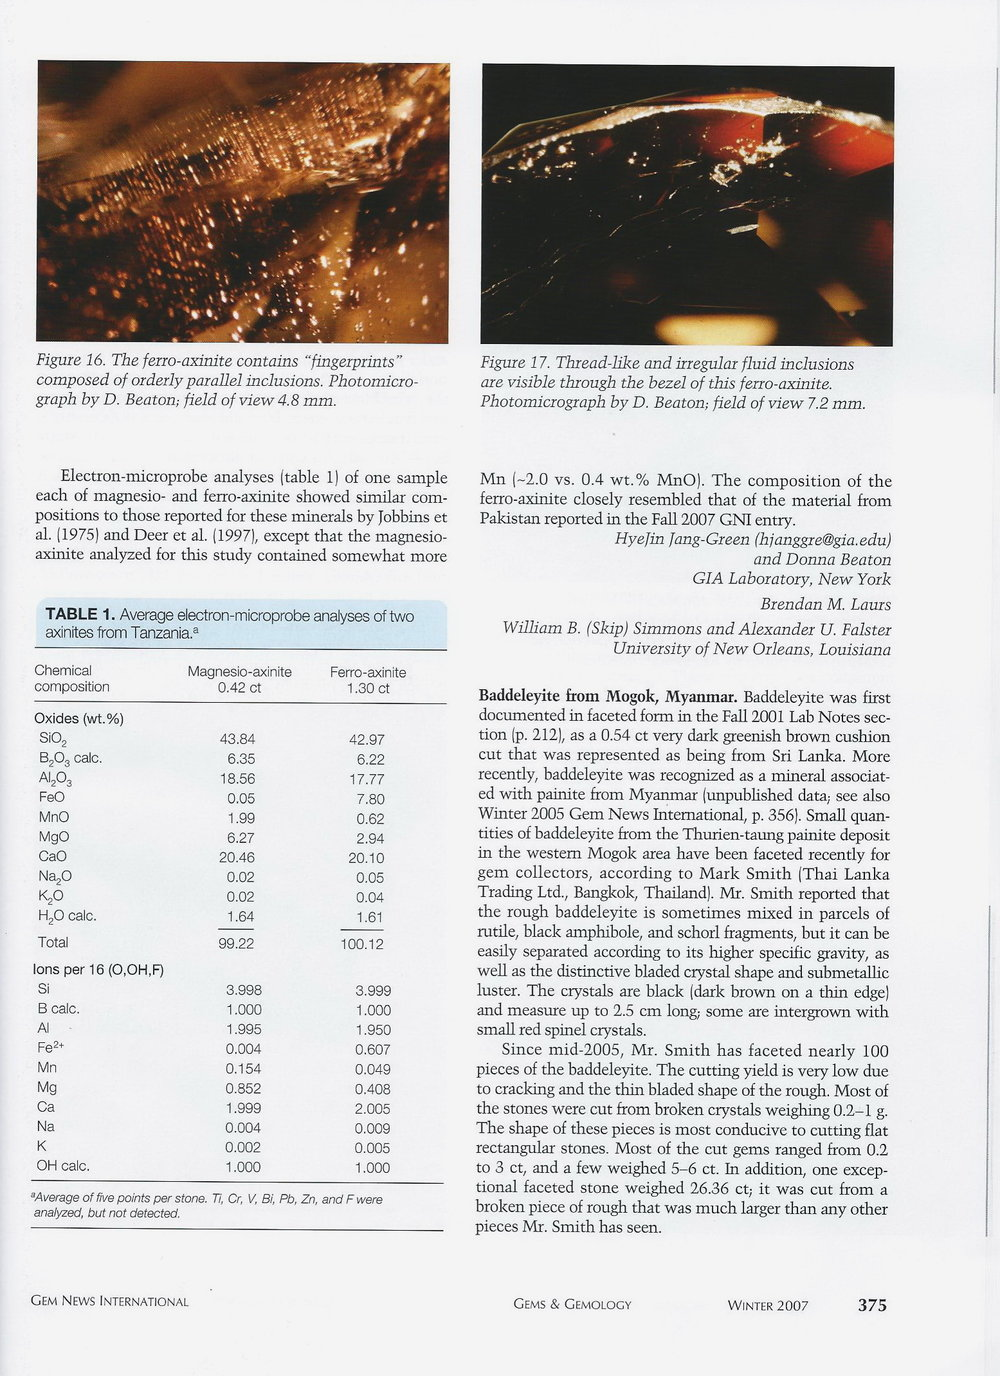 Gems & Gemology - Winter 2007 p.1